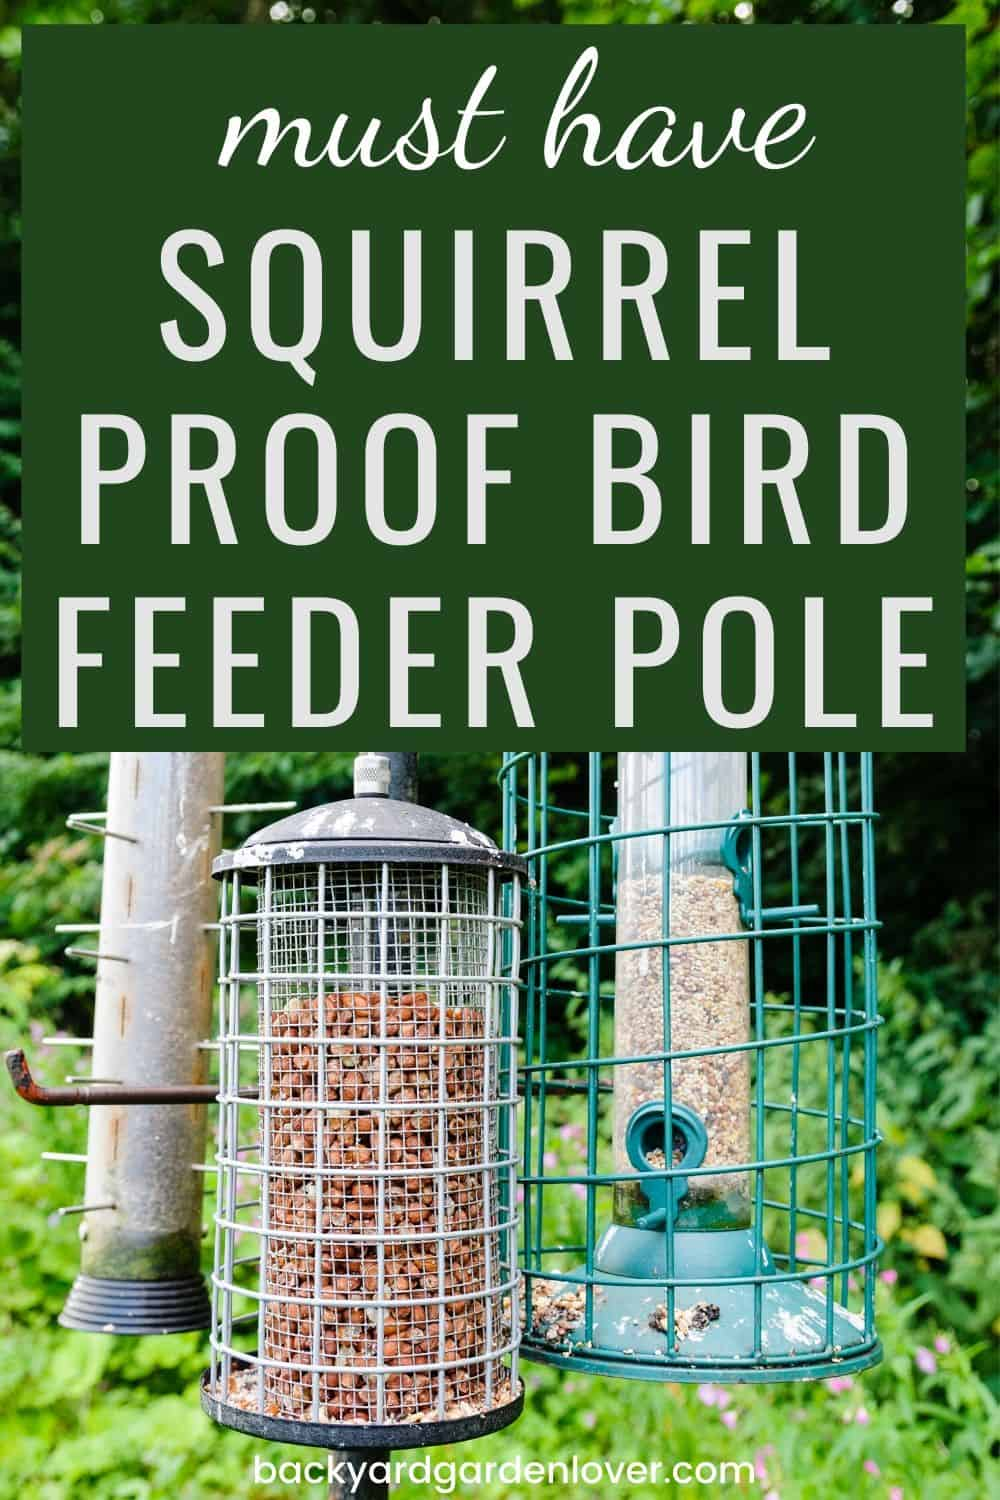 Must have squirrel proof bird feeder pole for your feeders